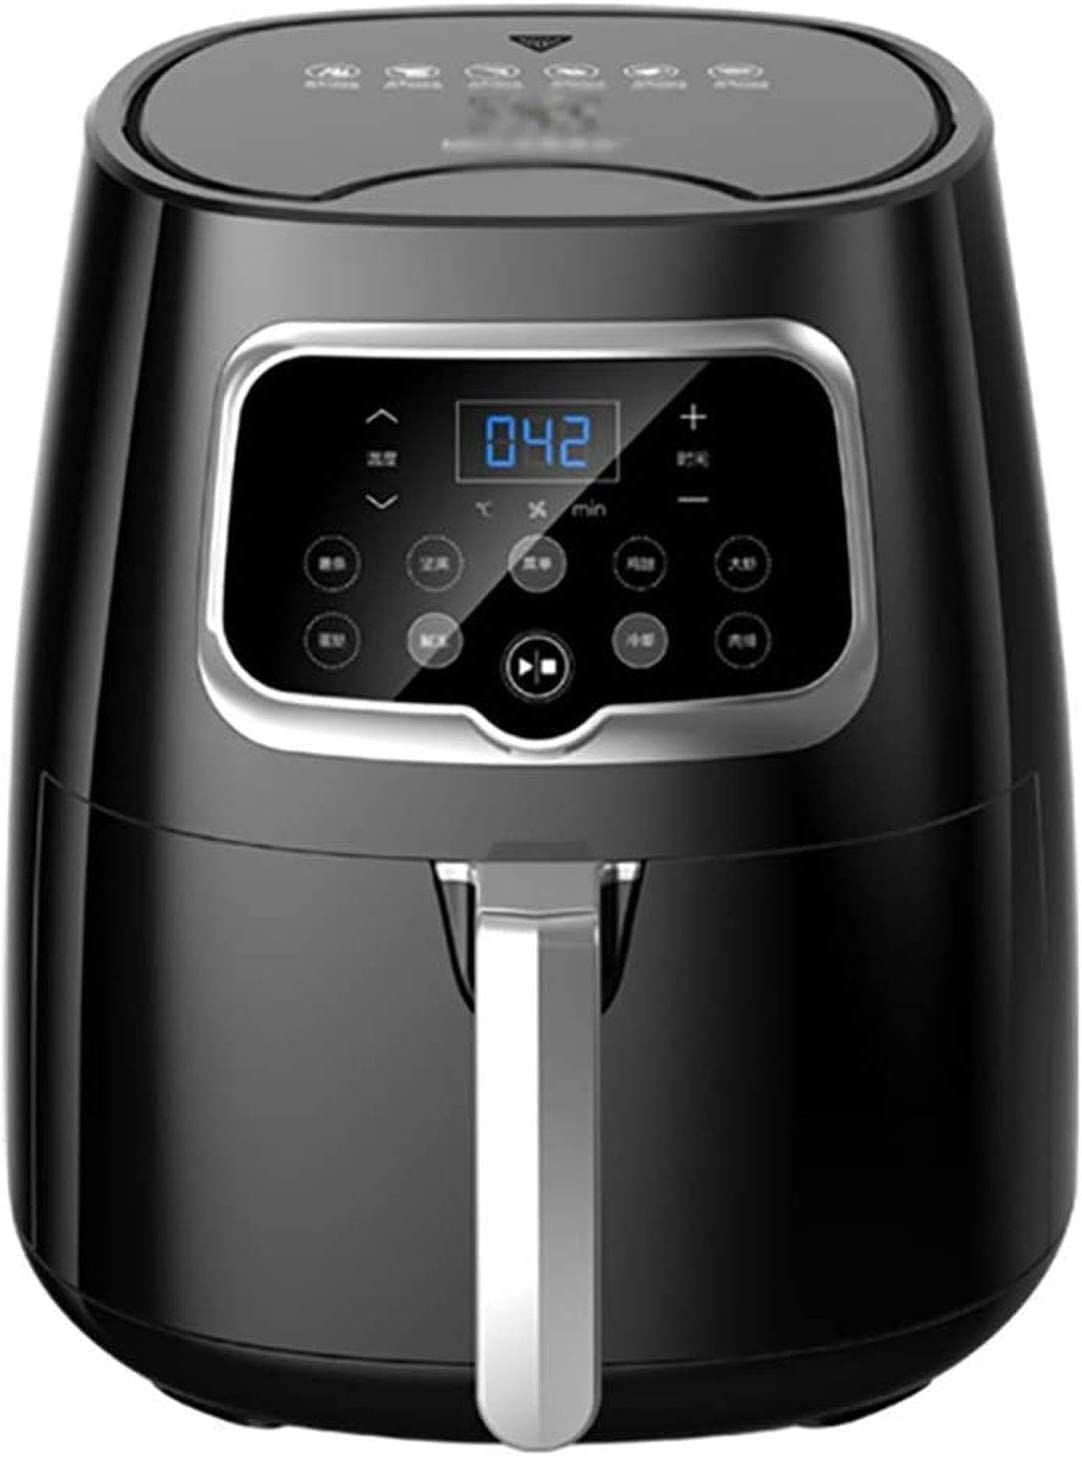 TSWEET Air Frye, 4.5L Oil Free Air Fryers for Home Use, LED One Touch Screen, Timer & Temperature Control,Nonstick Basket,1350W